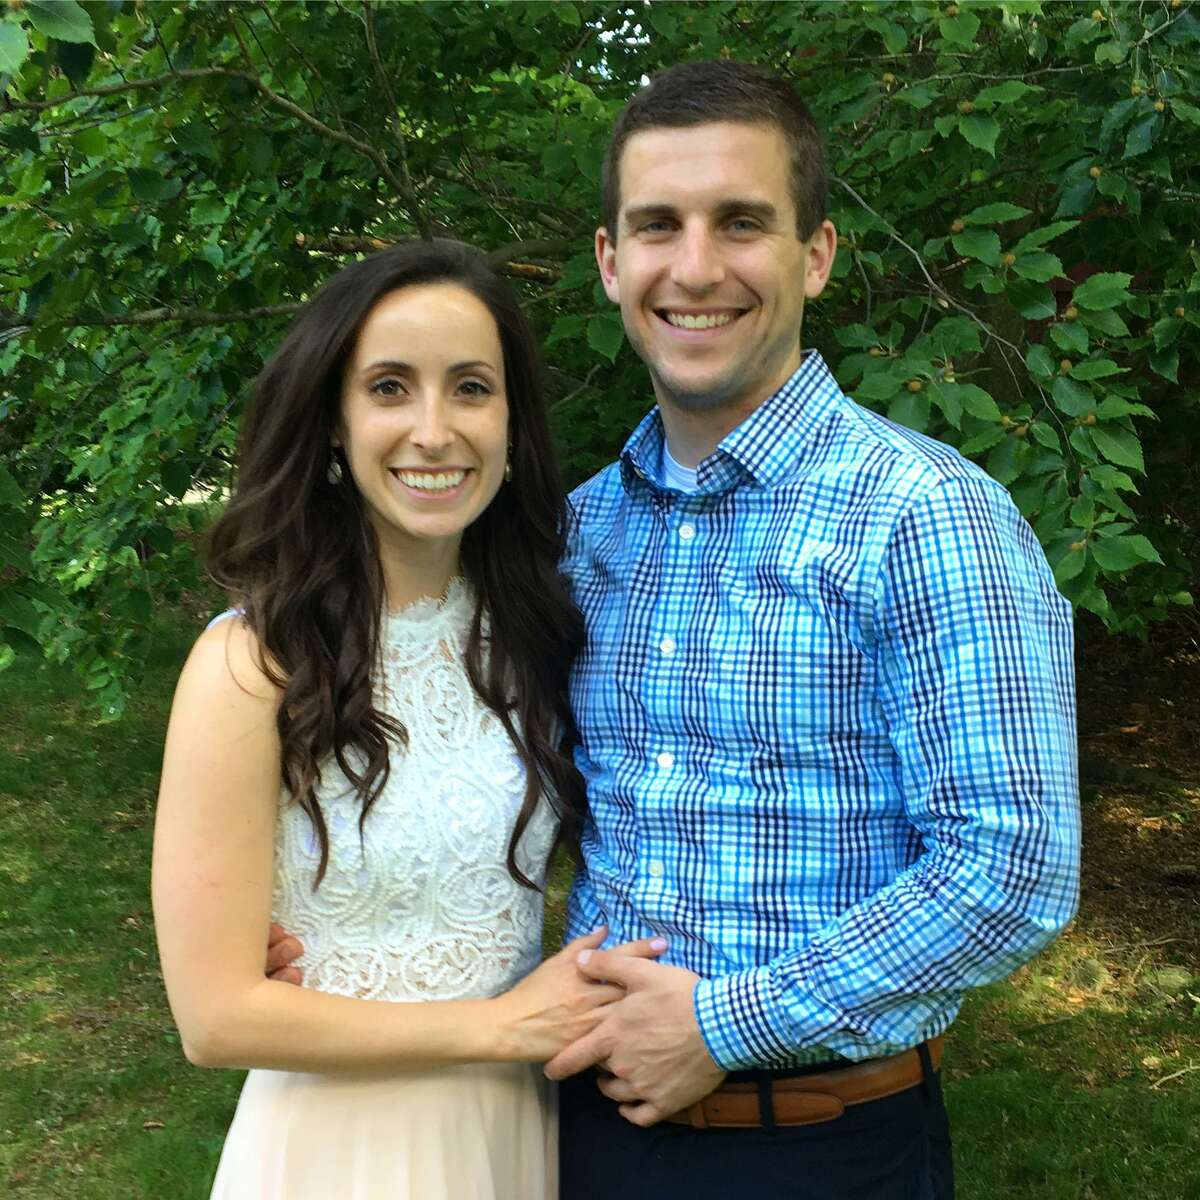 Lauren Elizabeth O'Connor is engaged to be married to Joseph Dominic Lucchesi.